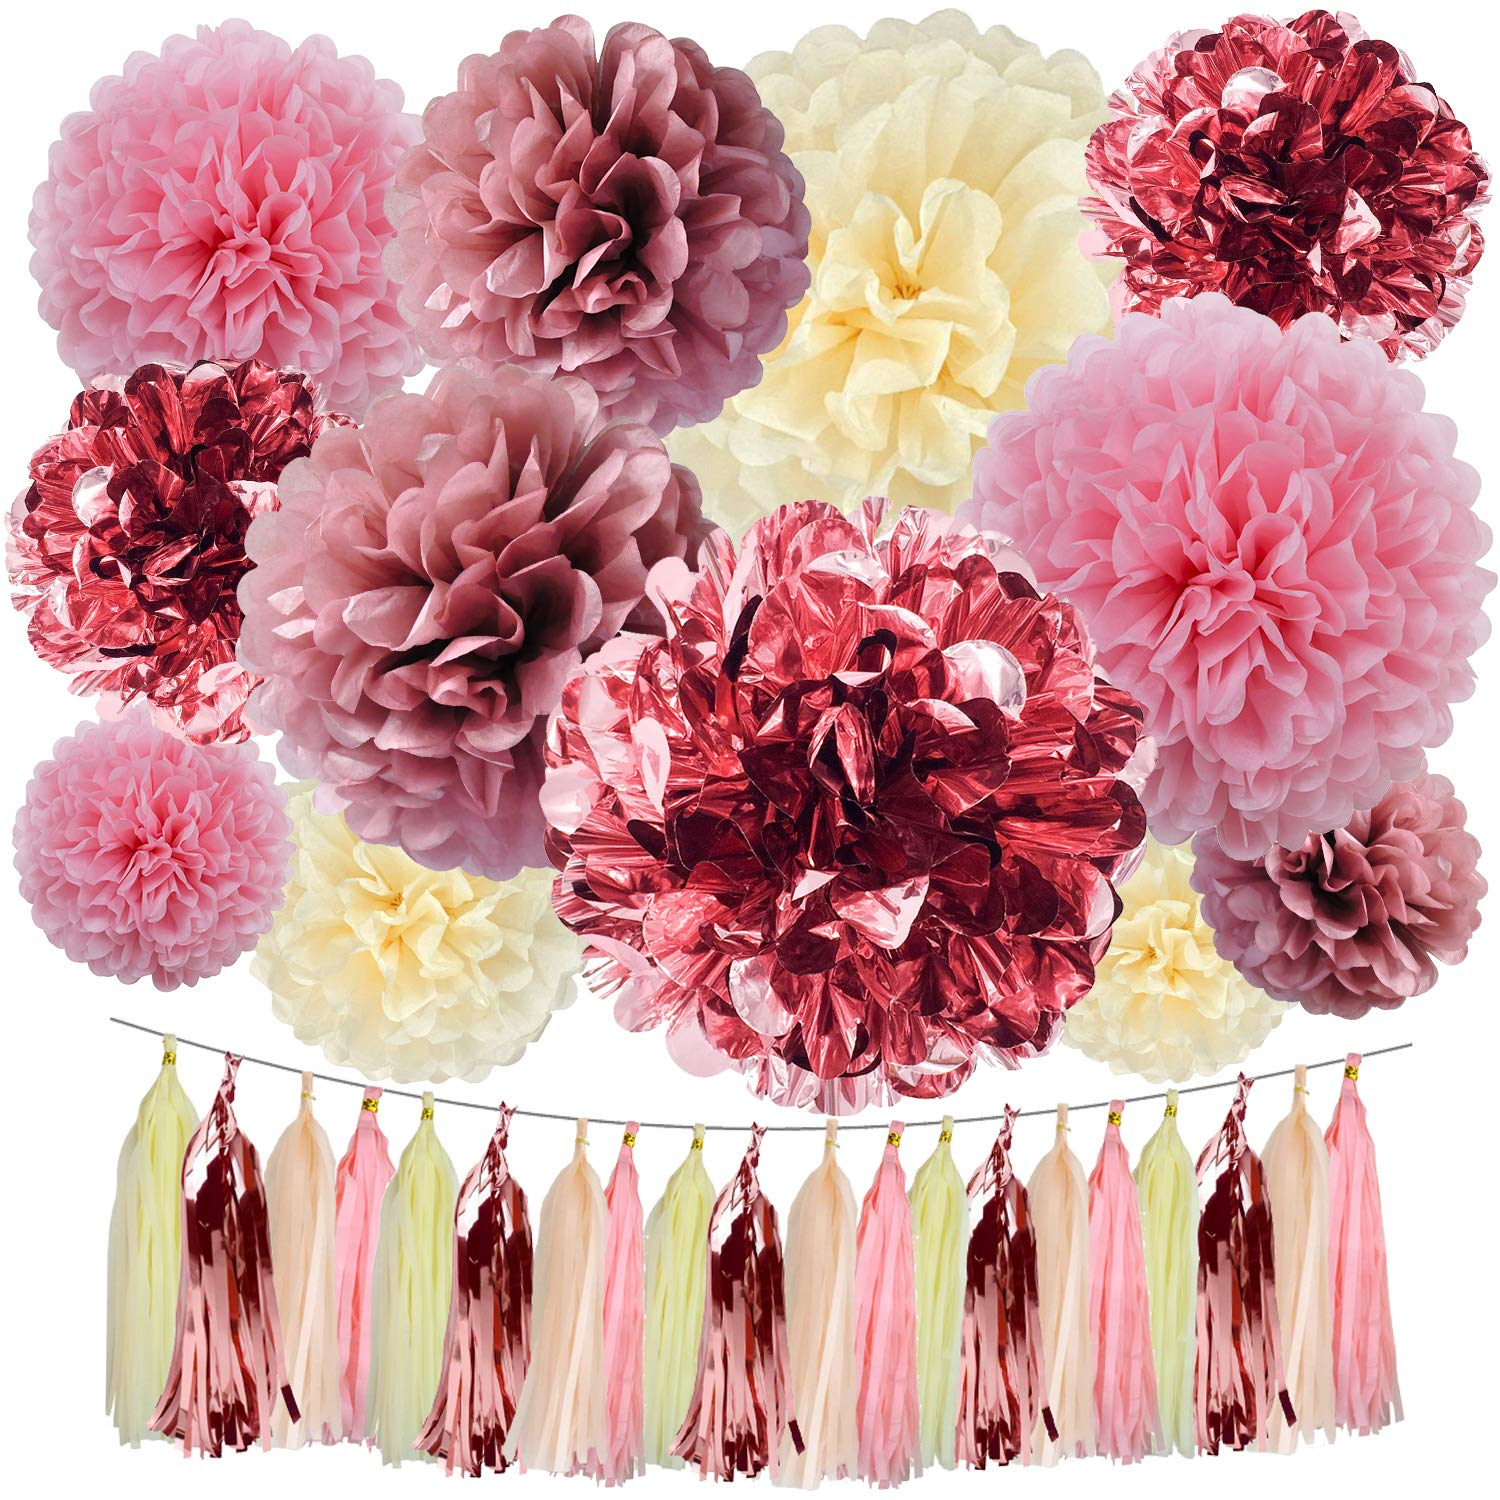 Cuterui Rose Gold Party Decorations 32 Pieces Metallic Rose Gold Foil Tissue Paper Pom Poms Paper Flowers and Tissue Paper Tassels for Baby Shower Decorations for Girl Birthday Party Decorations by Cuterui